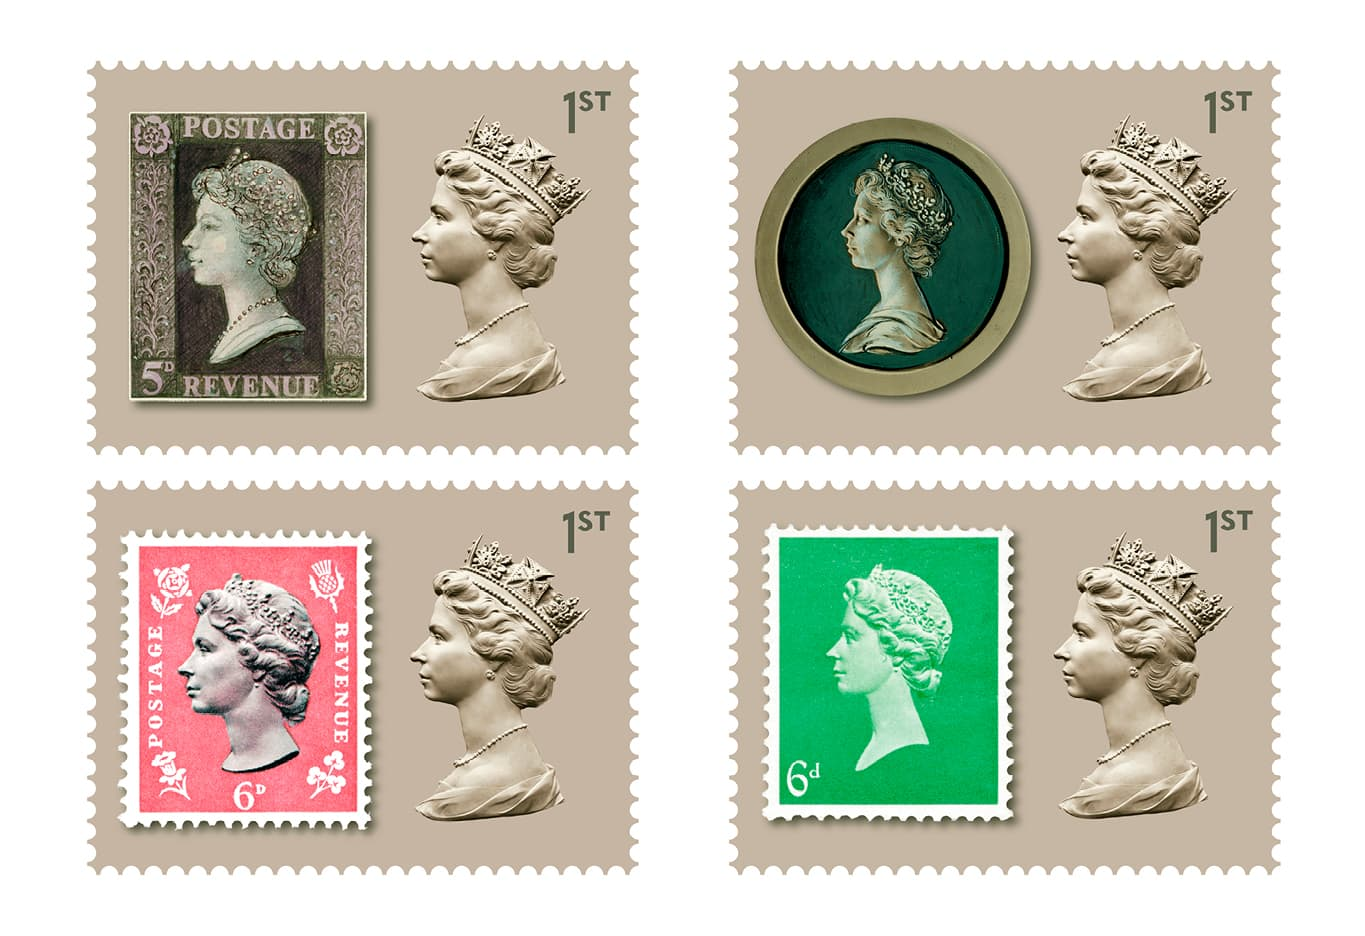 Queen Elizabeth II Machin Definitive Stamp Royal Mail 50th Anniversary stamps